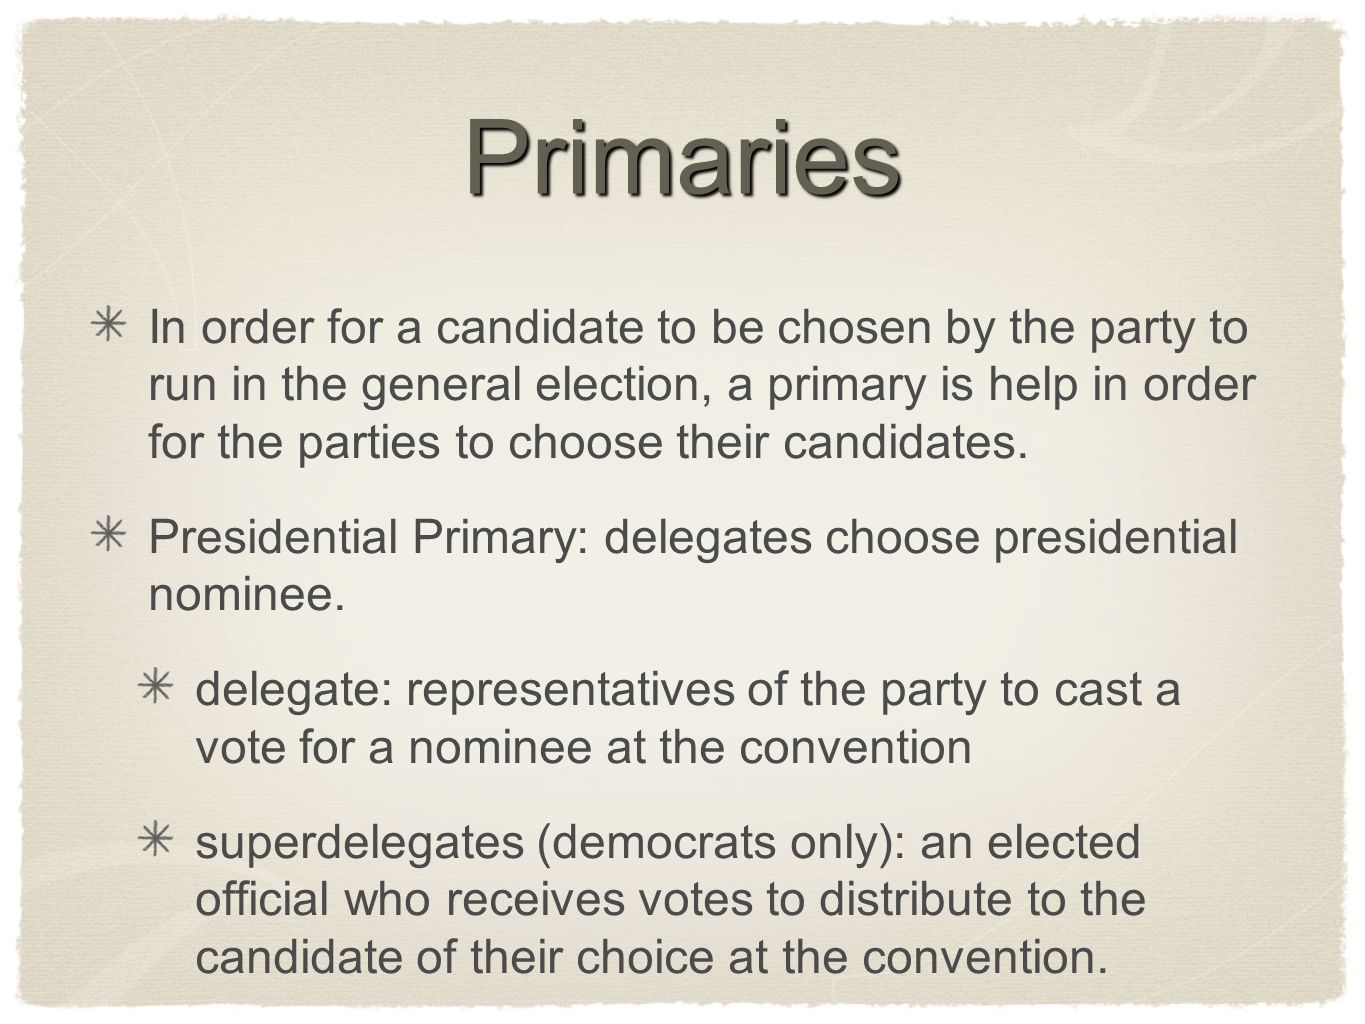 Primaries In order for a candidate to be chosen by the party to run in the general election, a primary is help in order for the parties to choose their candidates.